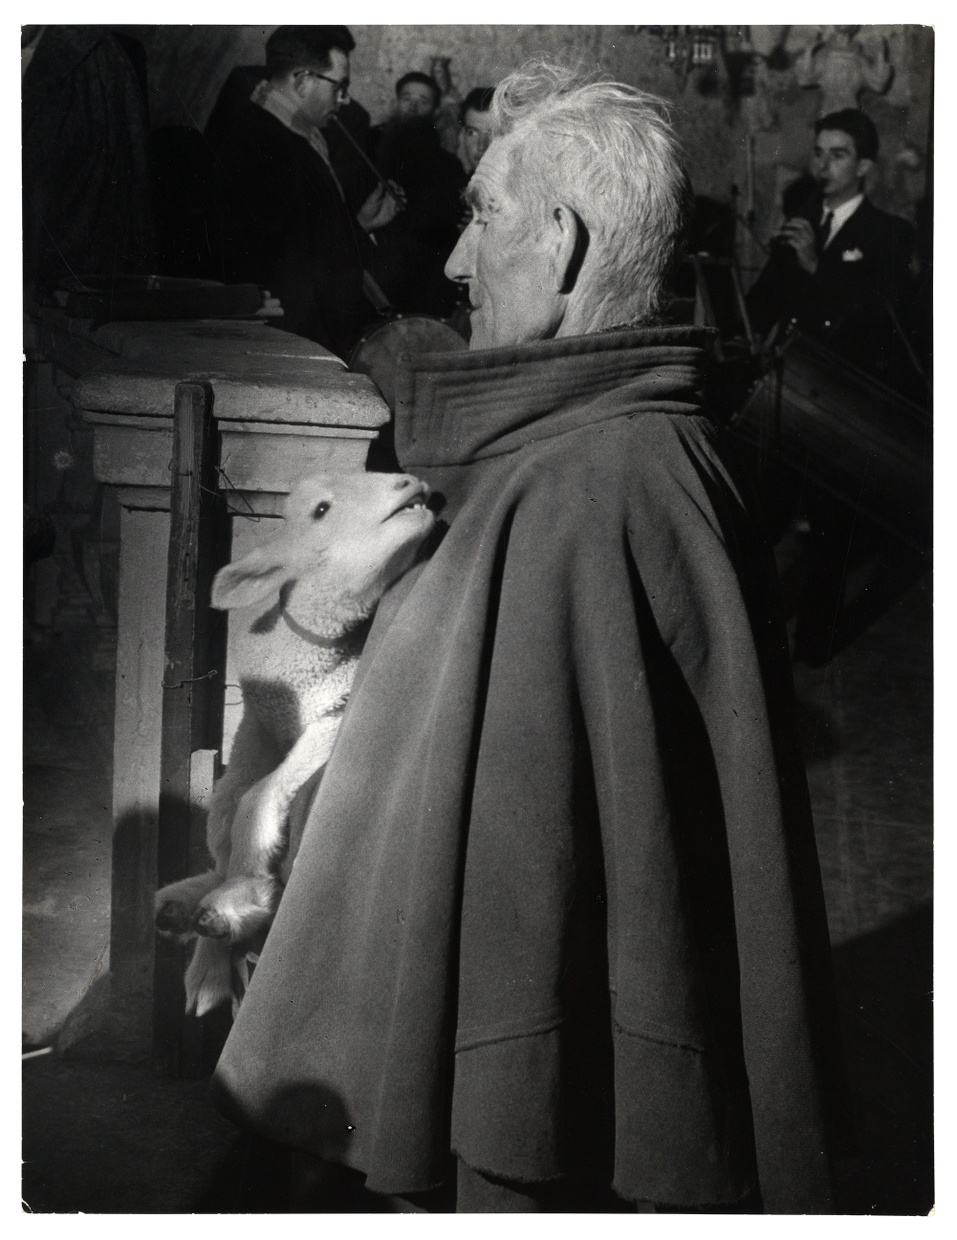 A black and white photograph of an old, light-skinned, stern looking man in a short cloak carrying a lamb.